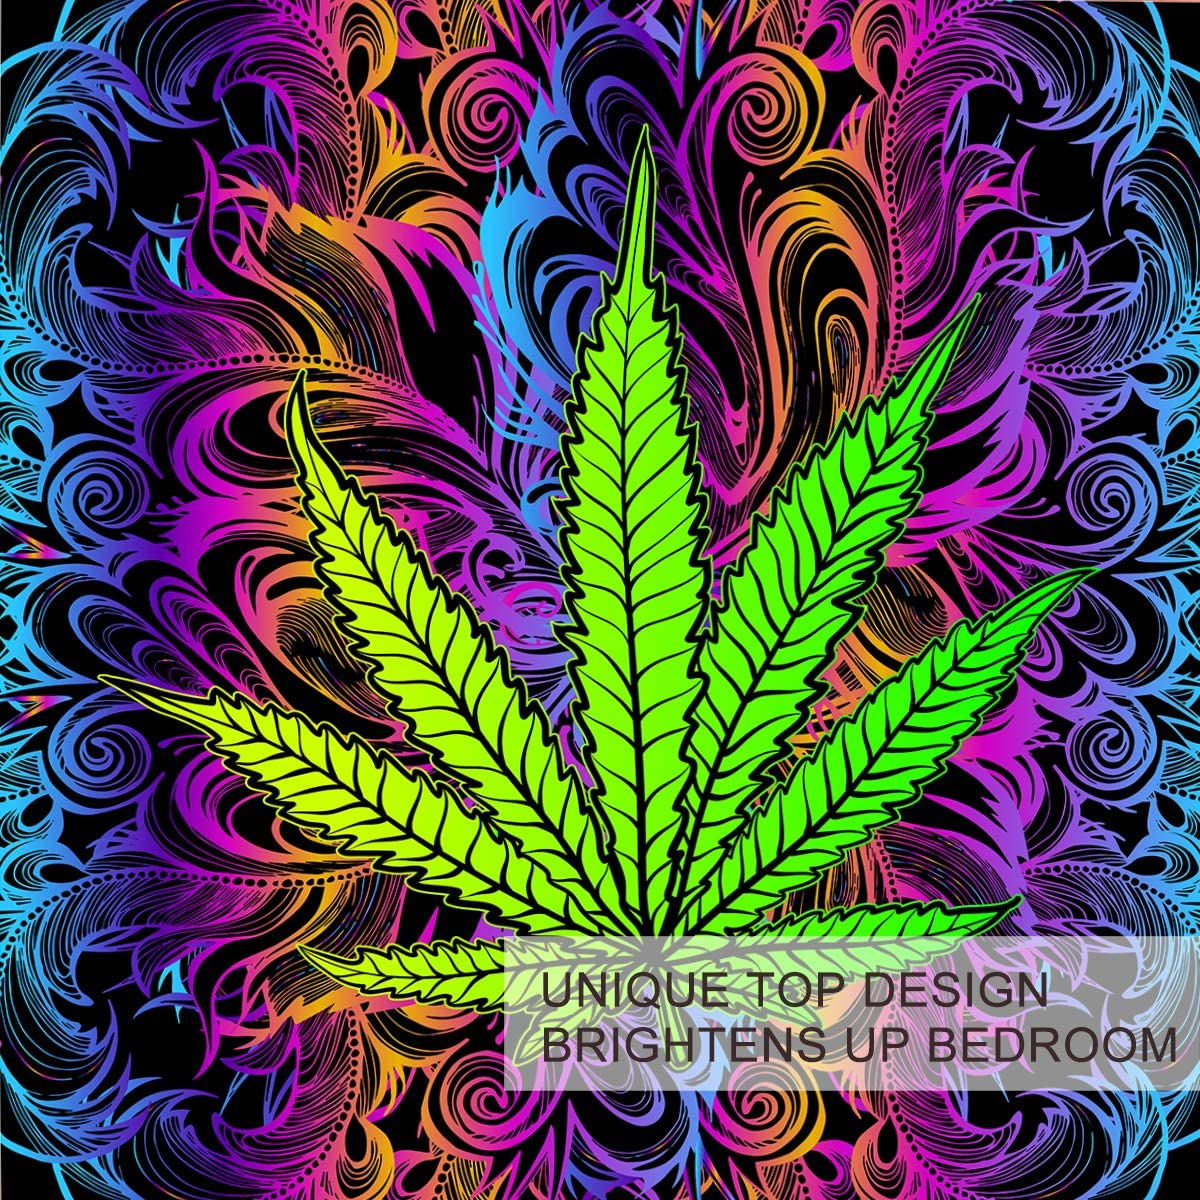 BlessLiving Duvet Cover Set Cannabis Leaf Bedding 3 Pcs Rainbow Weed Bedding Trippy Leaves Bed Set Bohemian Green Purple Full Size Comforter Cover